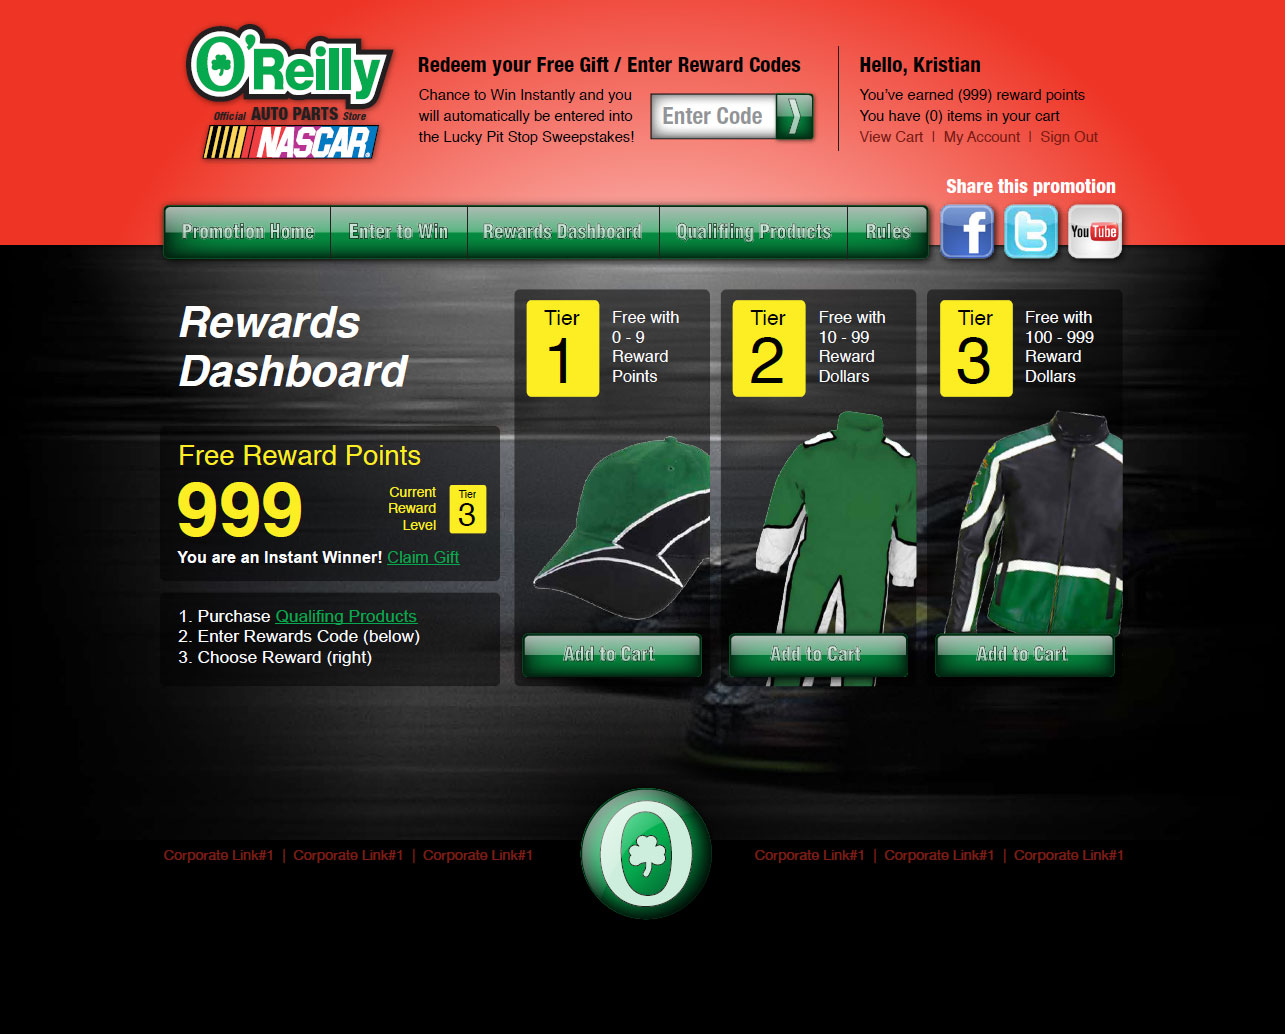 NASCAR O'Reilly - Sweepstakes Campaign Websites | Ethium | The